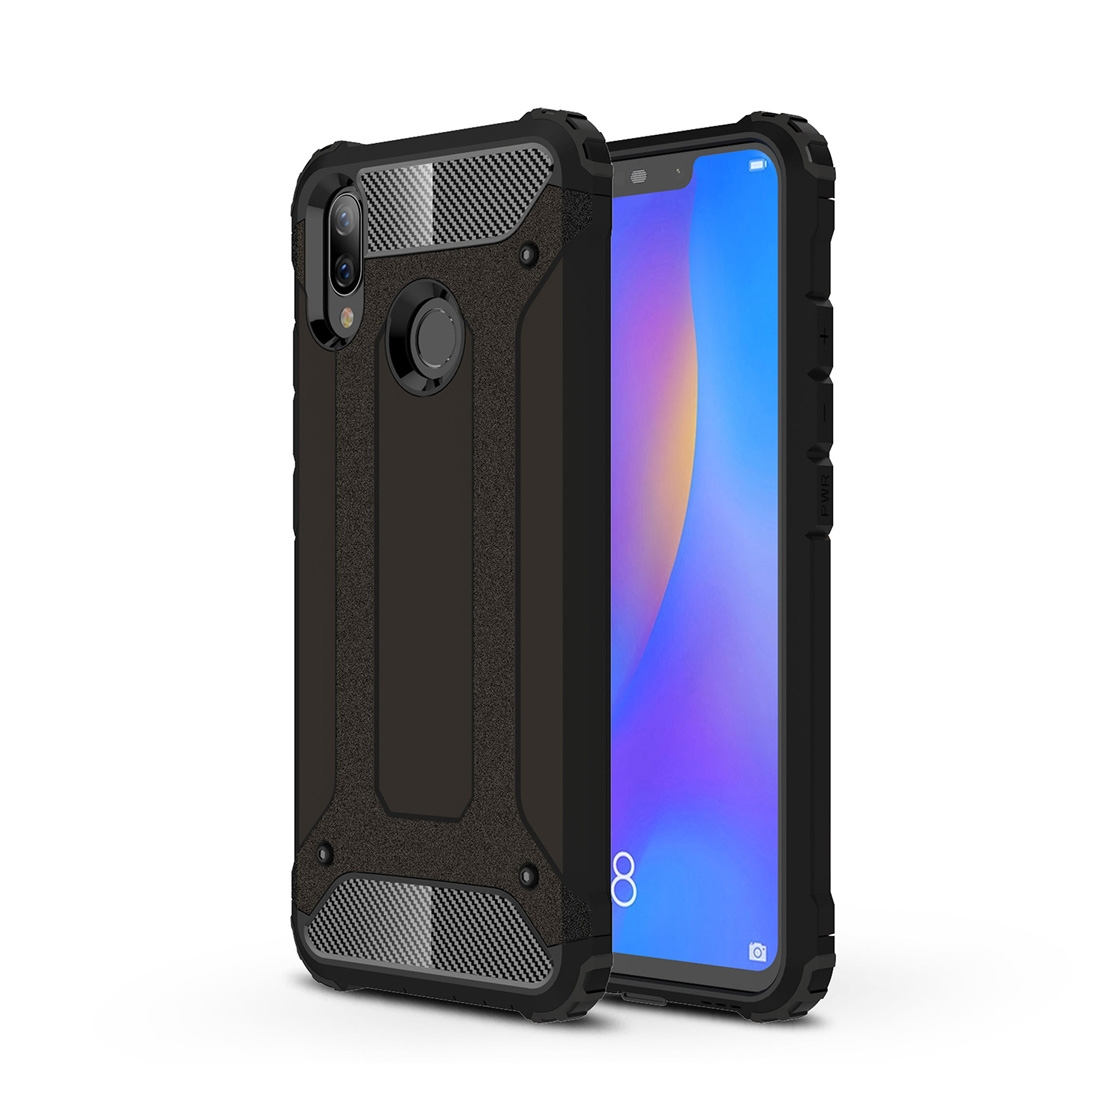 Diamond Armor Pc Tpu Heat Dissipation Protective Case